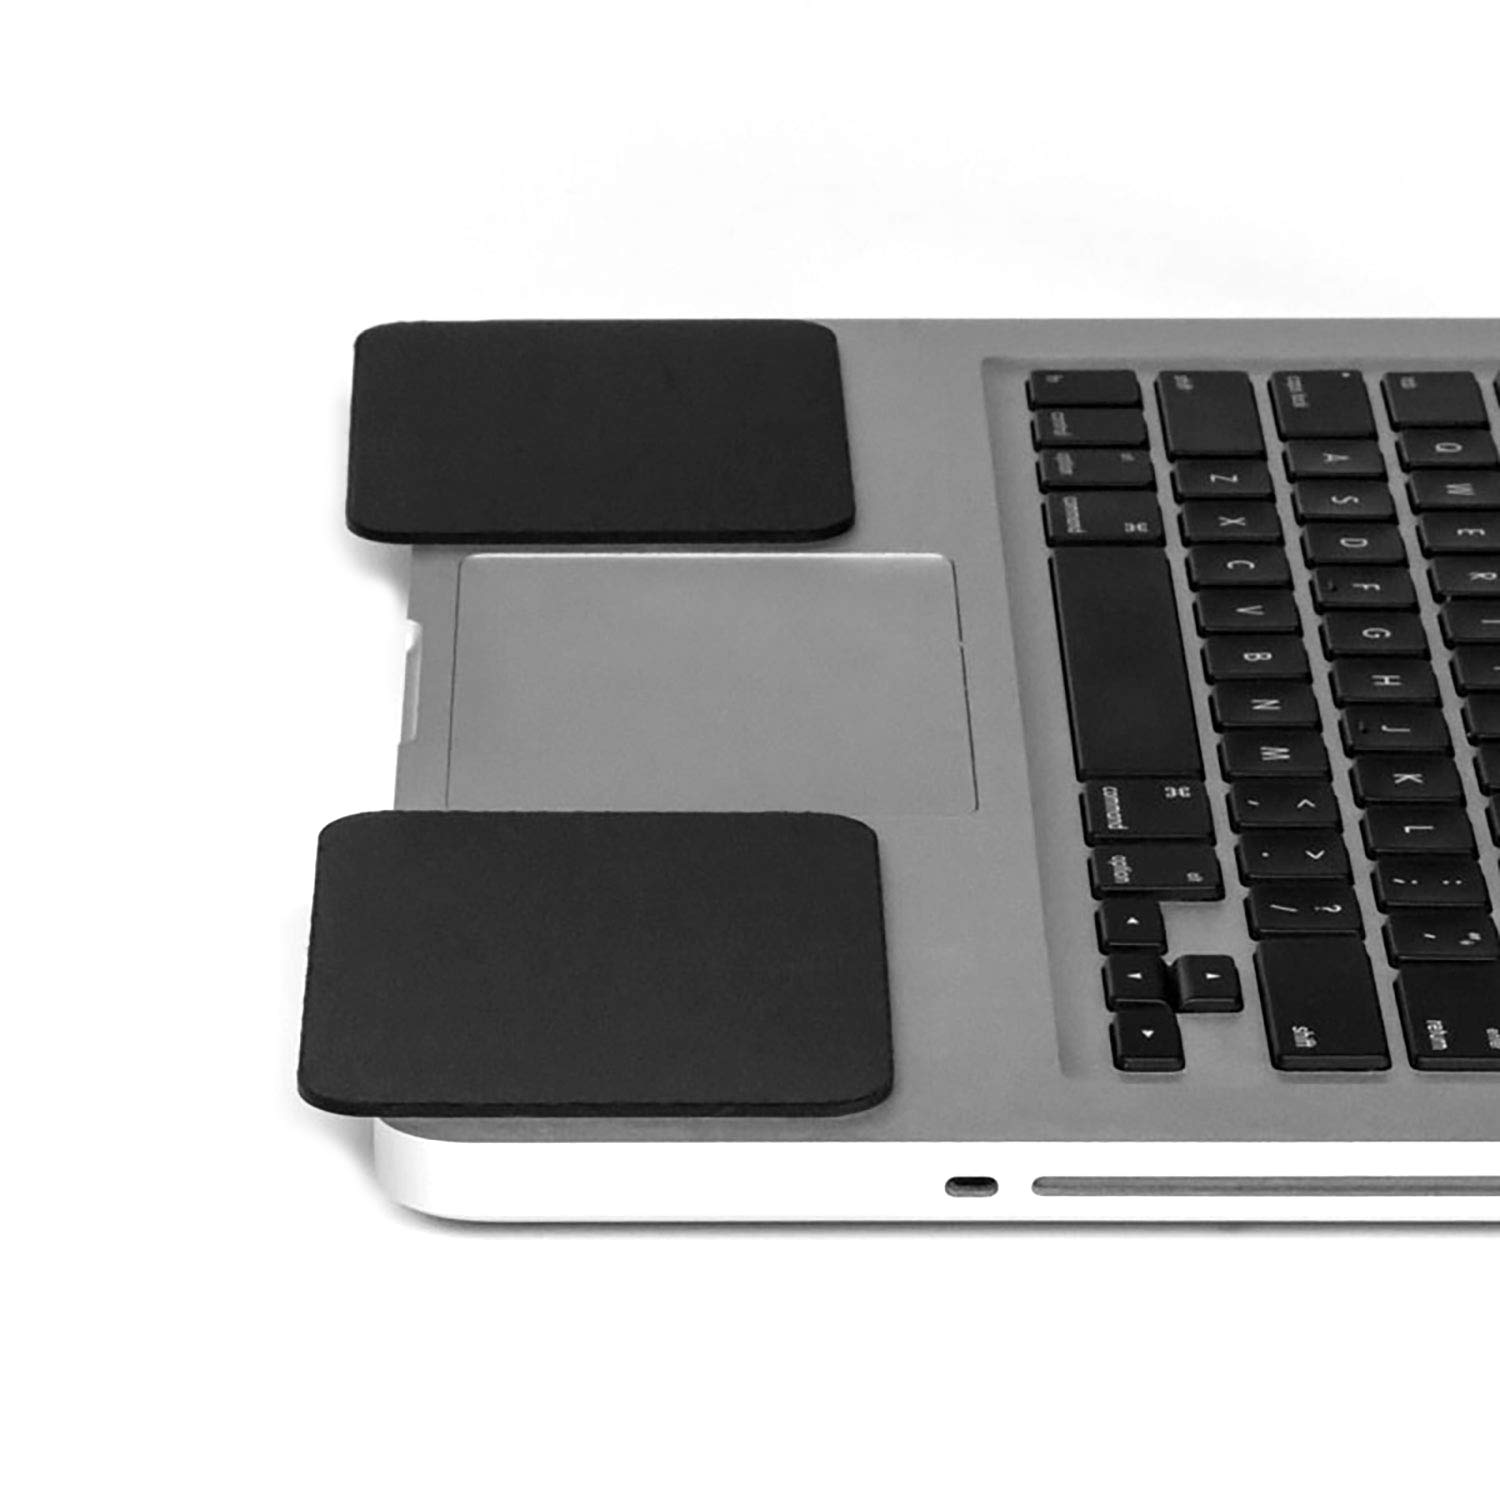 GRIFITI Large Slim Palm Pads Notebook Wrist Rests and Laptop Wrist Pads Made with Silicone to Easily Reposition and Remove while Travelling (2 Large 4 x 3.12 inches) FBA_24021